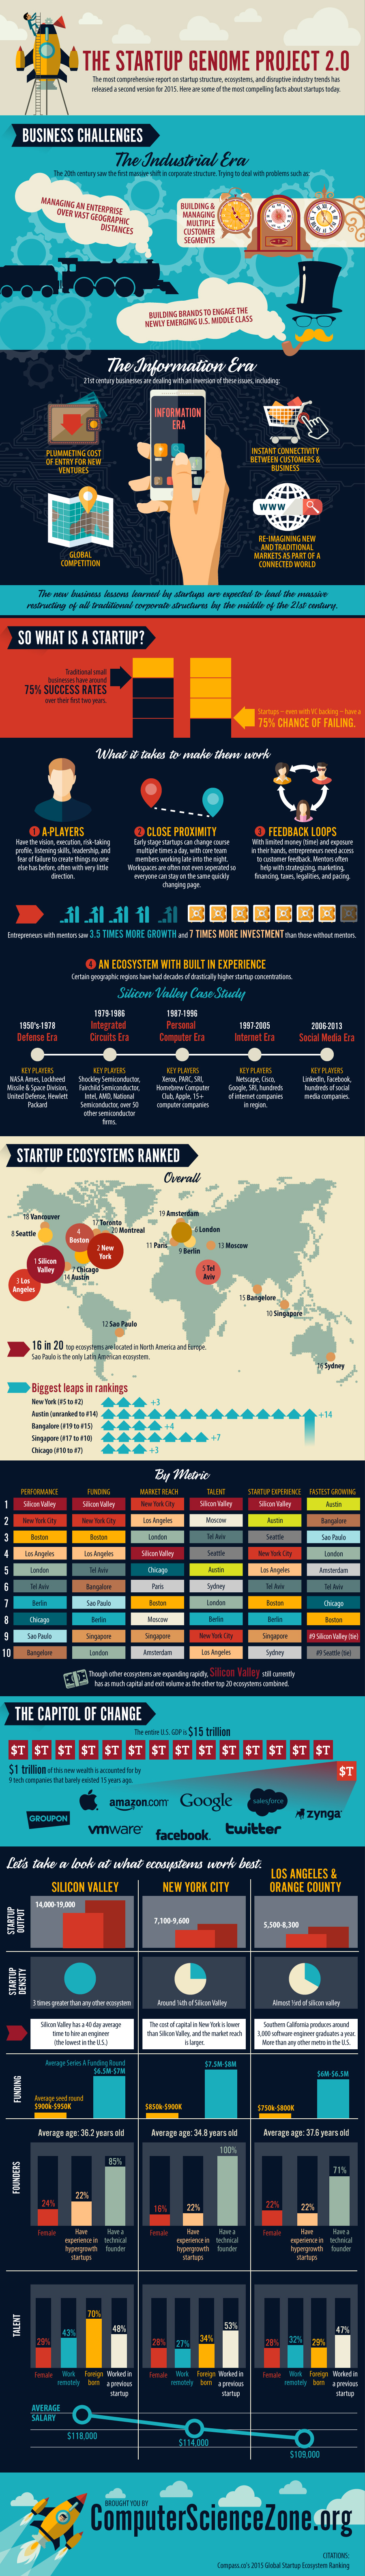 The Startup Genome Project 2.0